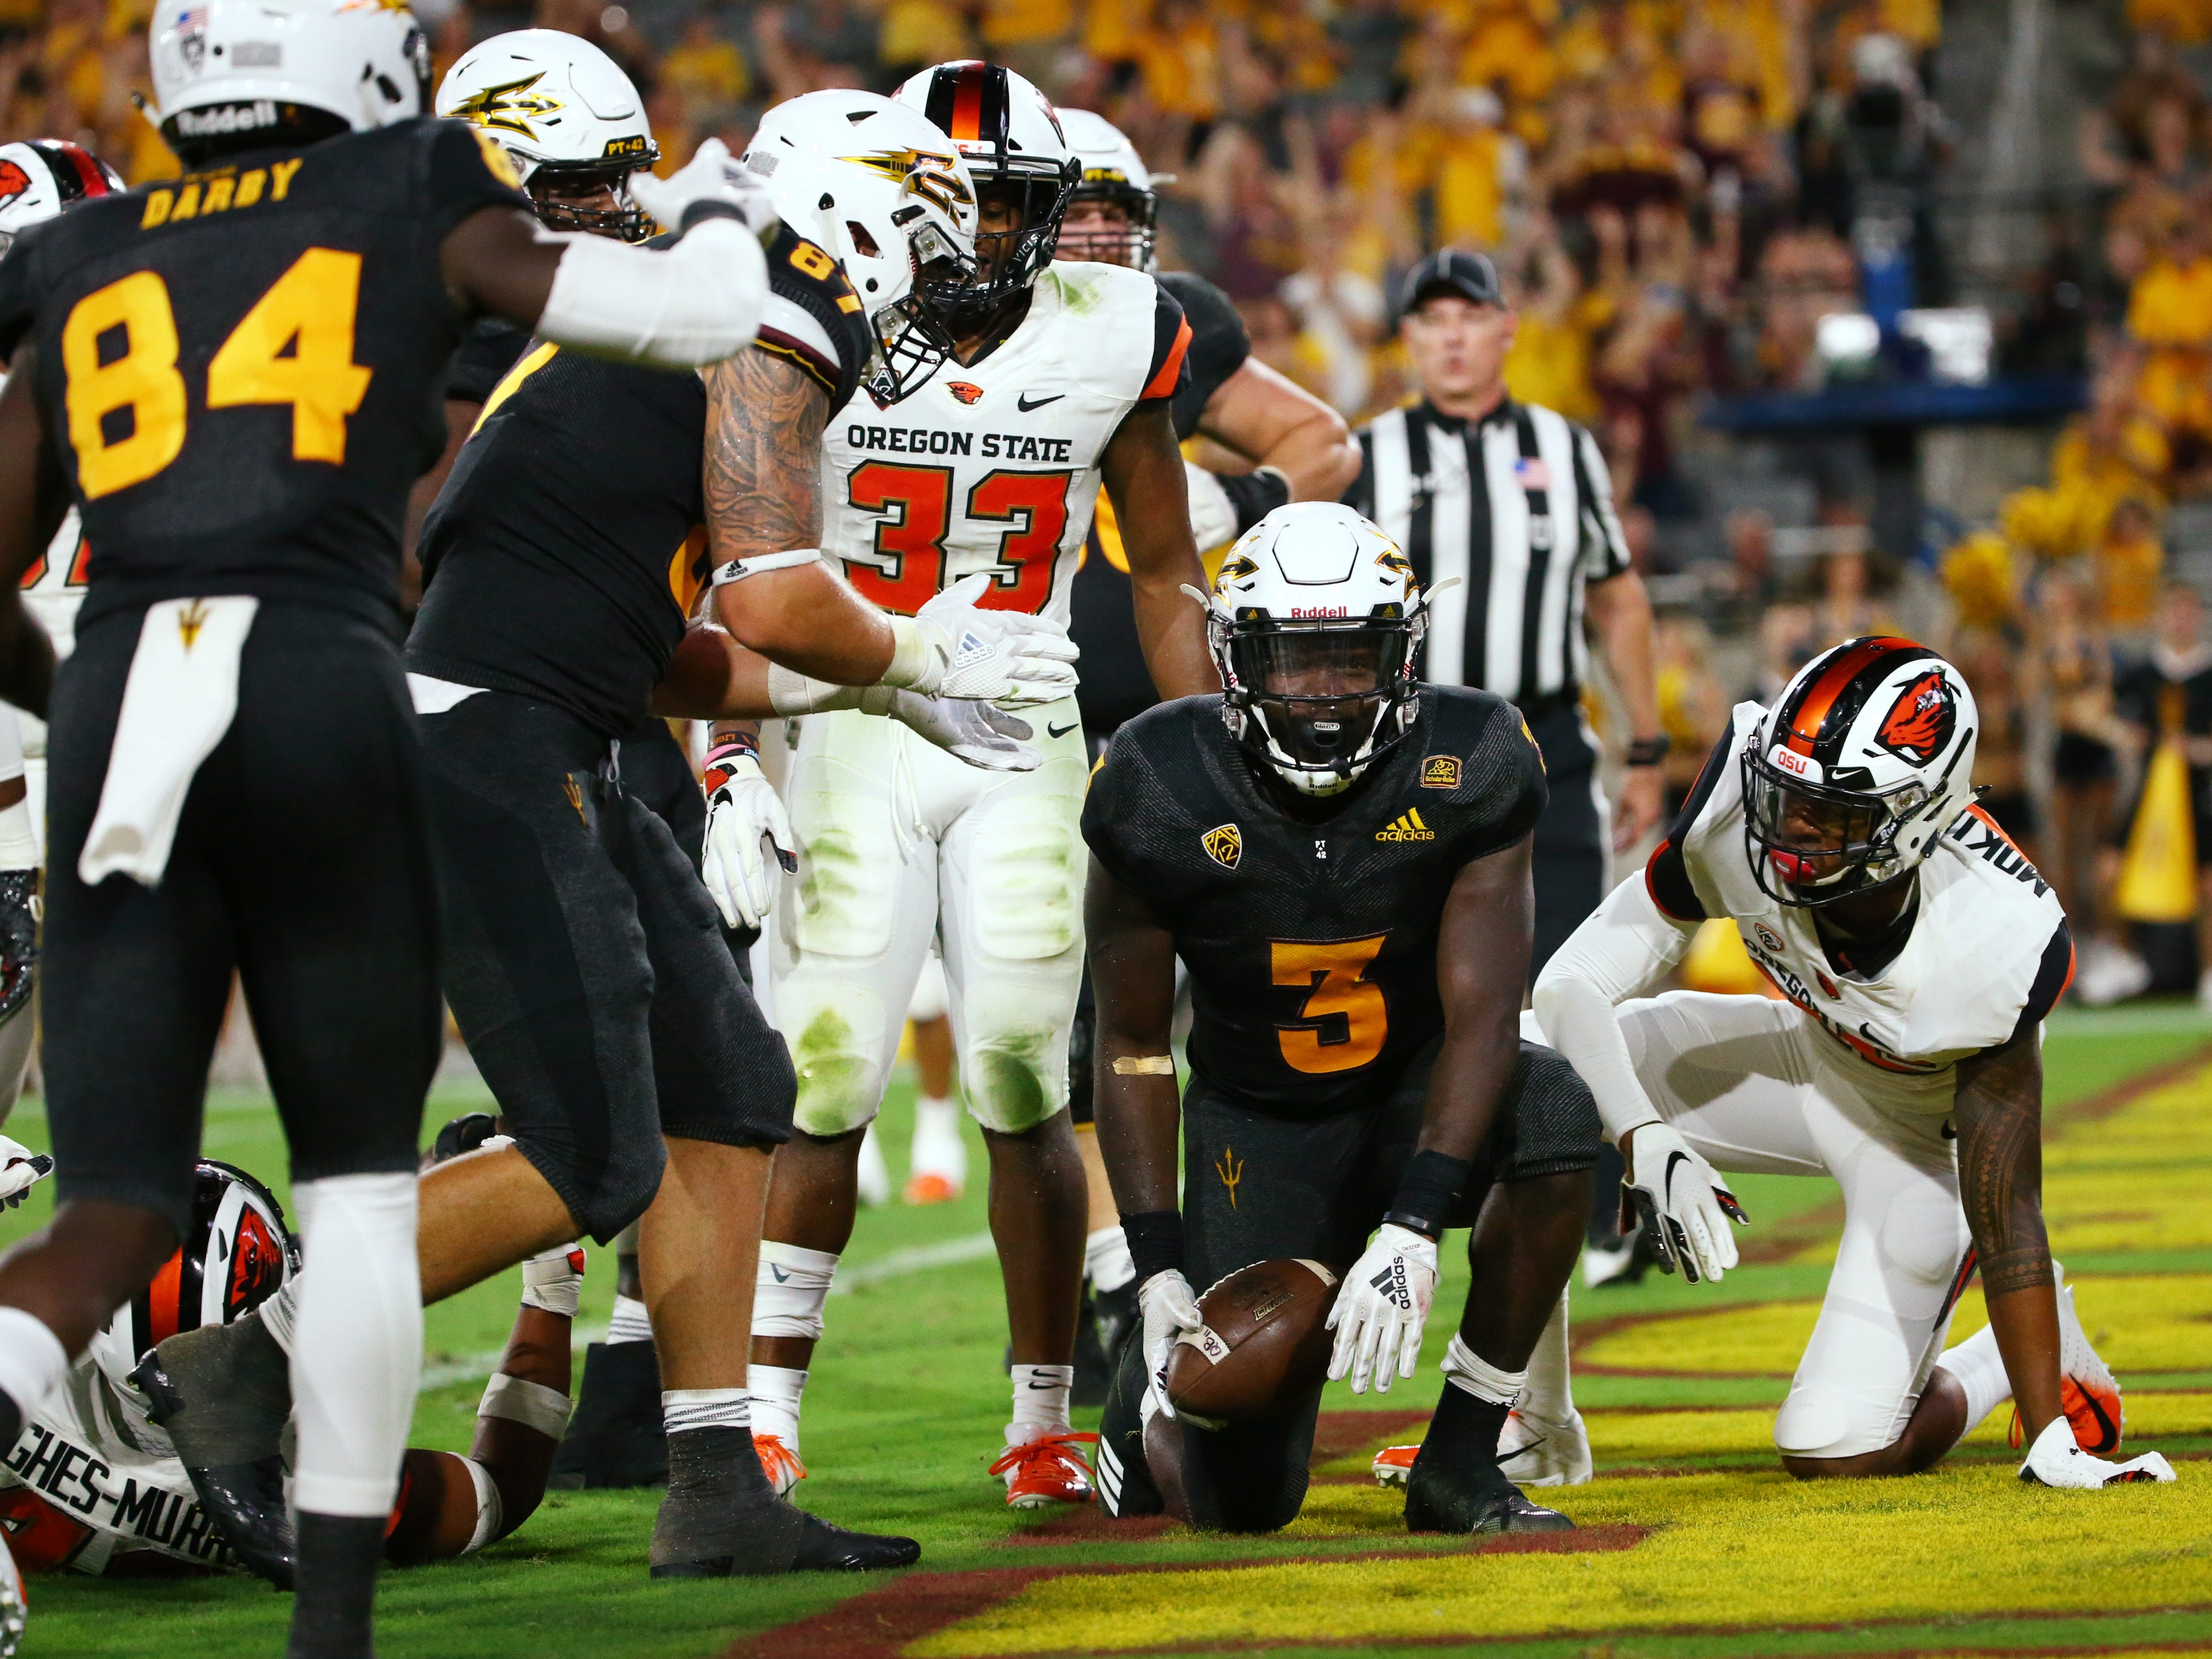 Arizona State running back Eno Benjamin scores a touchdown against Oregon State in the second half on Sep. 29, 2018, at Sun Devil Stadium.